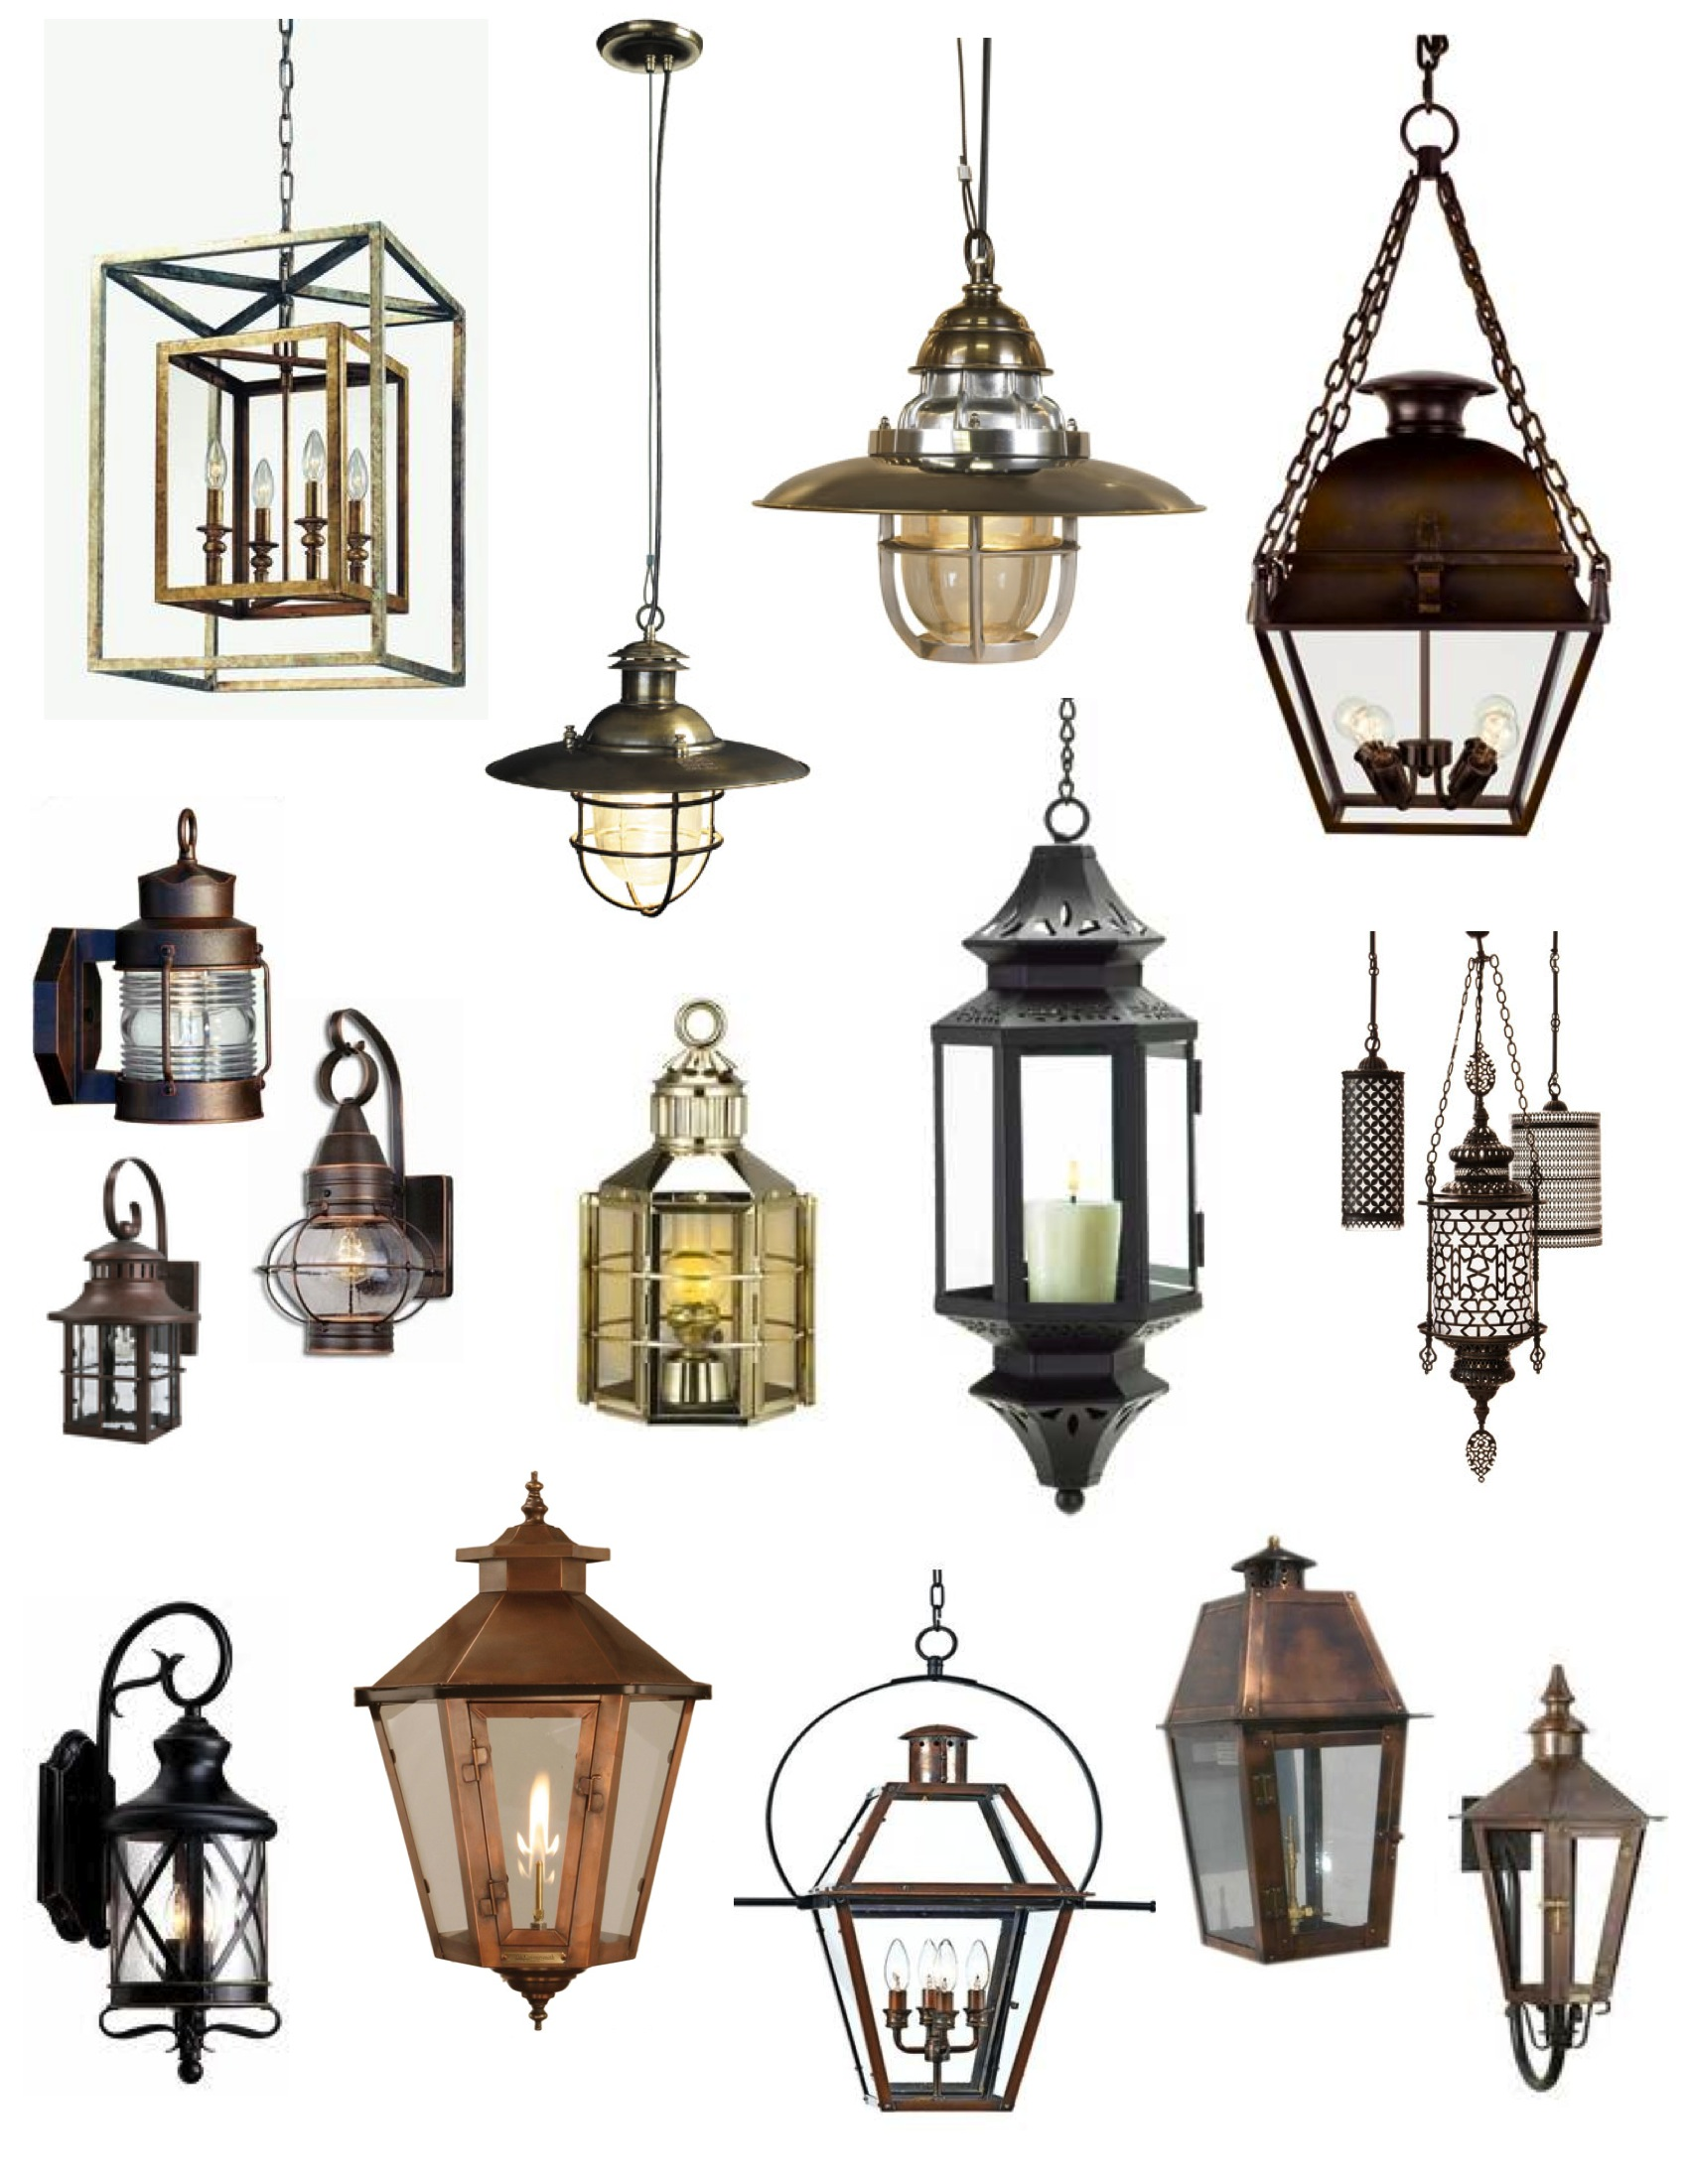 interior lantern lighting.  Lighting Exterior U0026 Interior Style Lantern Lighting In P